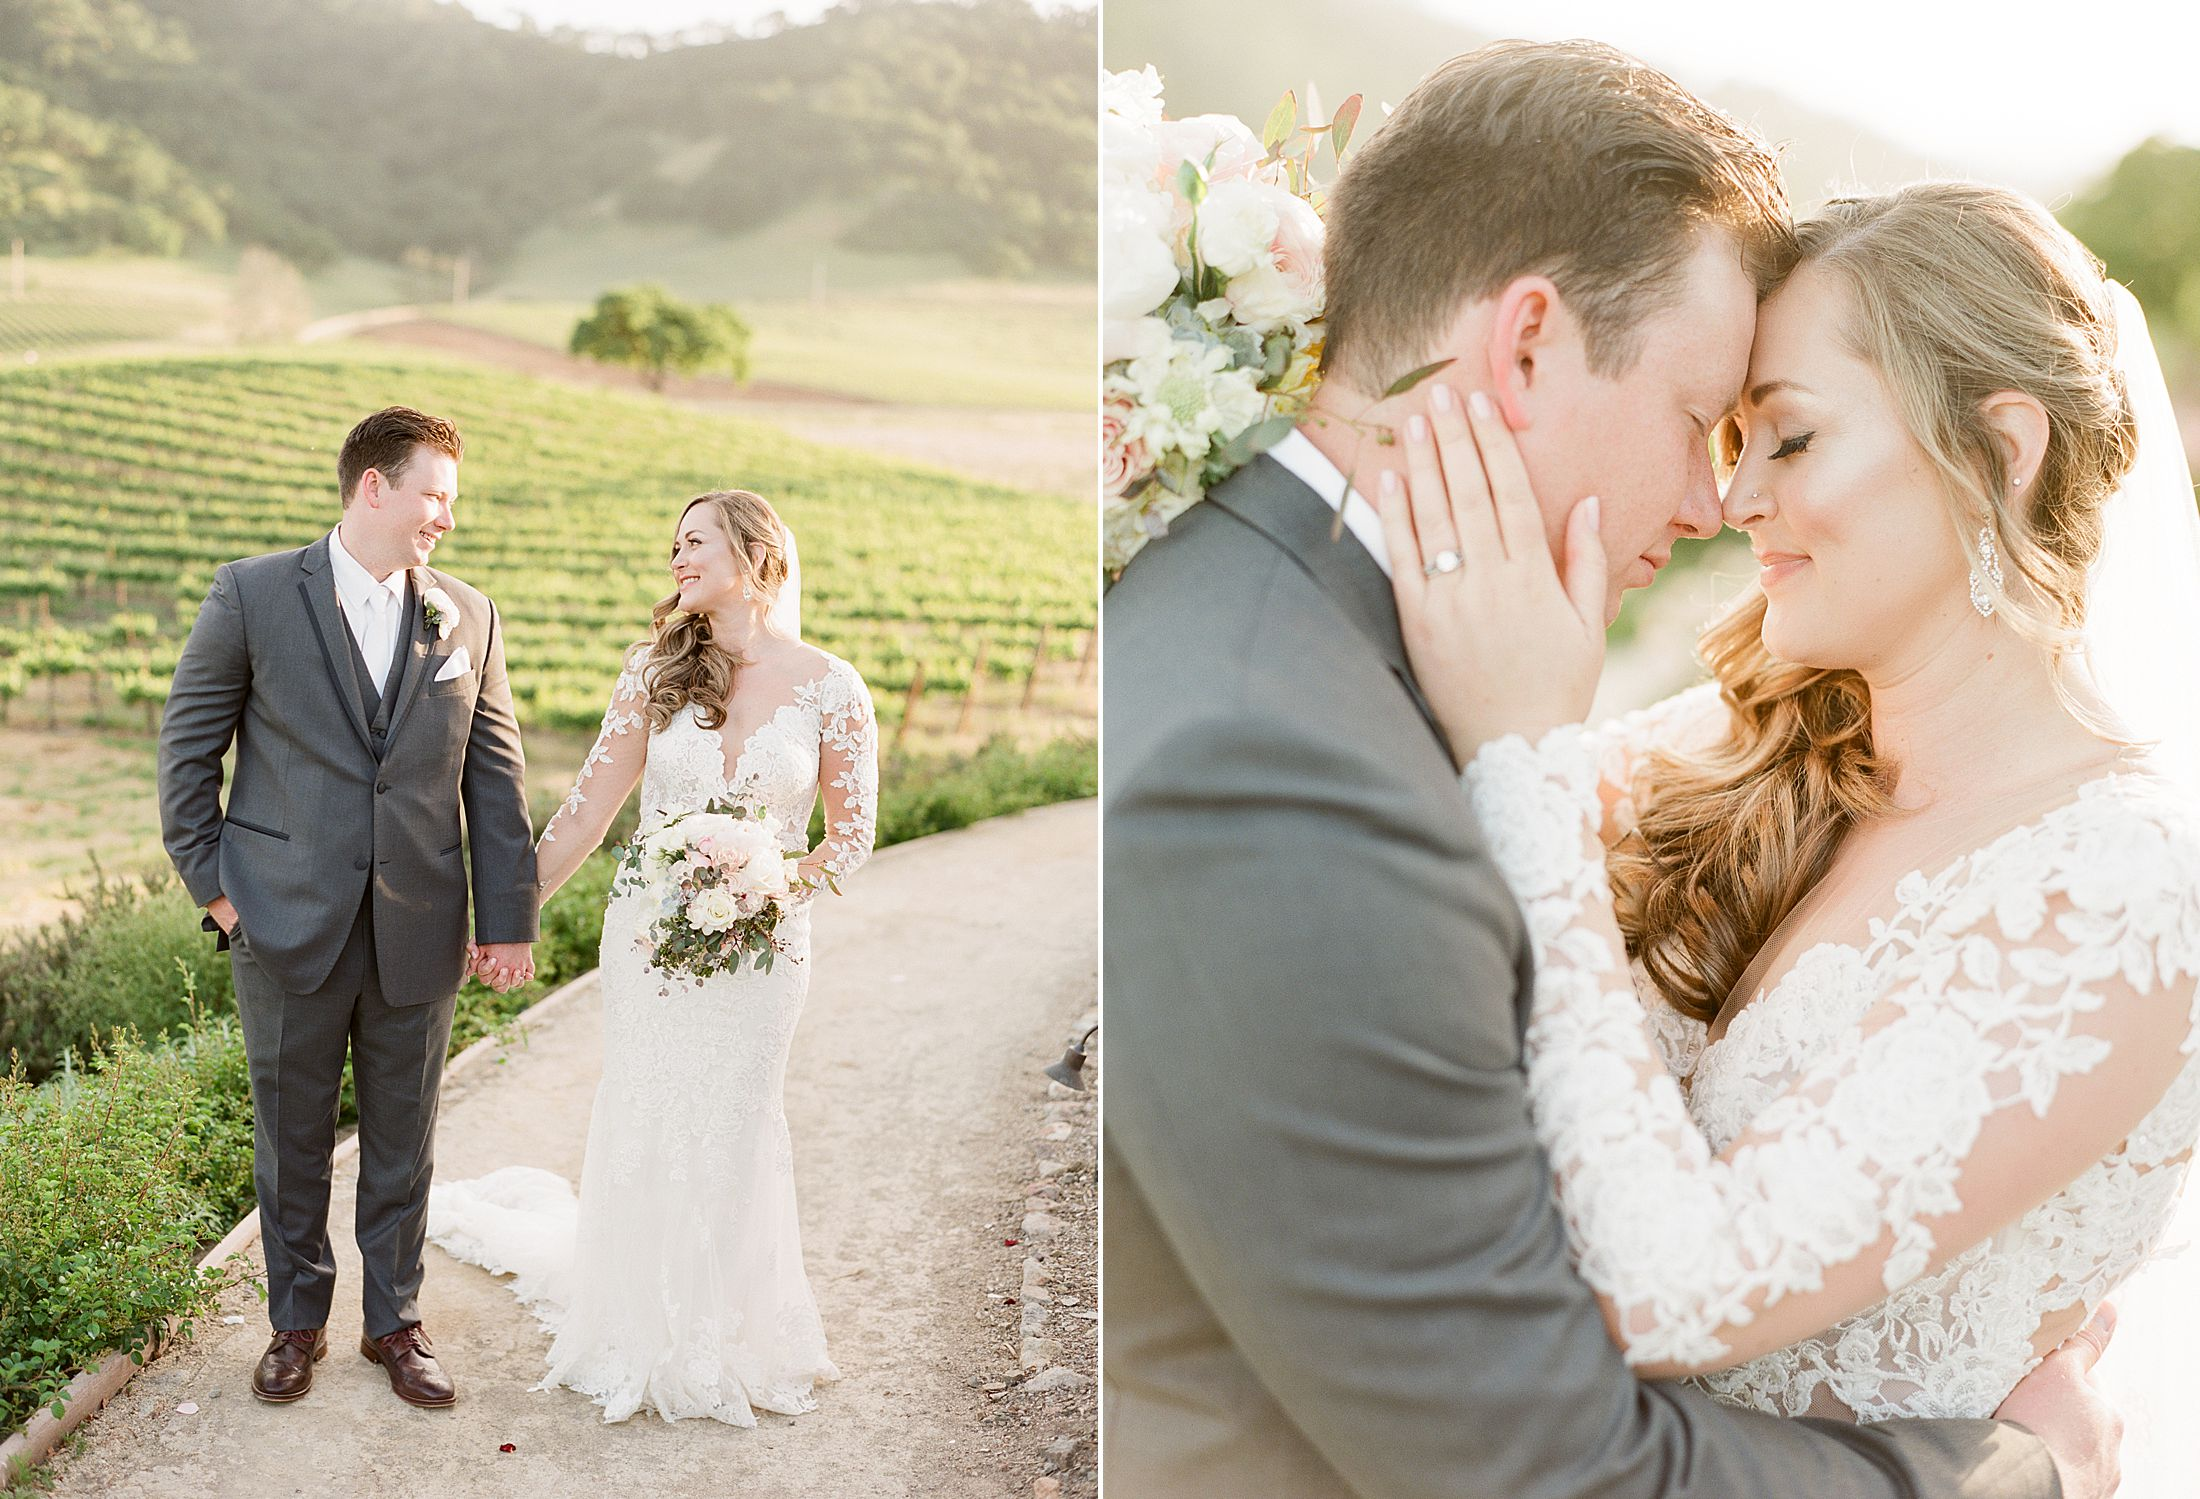 Clos LaChance Winery Wedding - Ashley Baumgartner - Kat & Kurt - Morgan Hill Wedding - Winery Wedding - Bay Area Photographer - Sacramento Wedding Photographer_0053.jpg